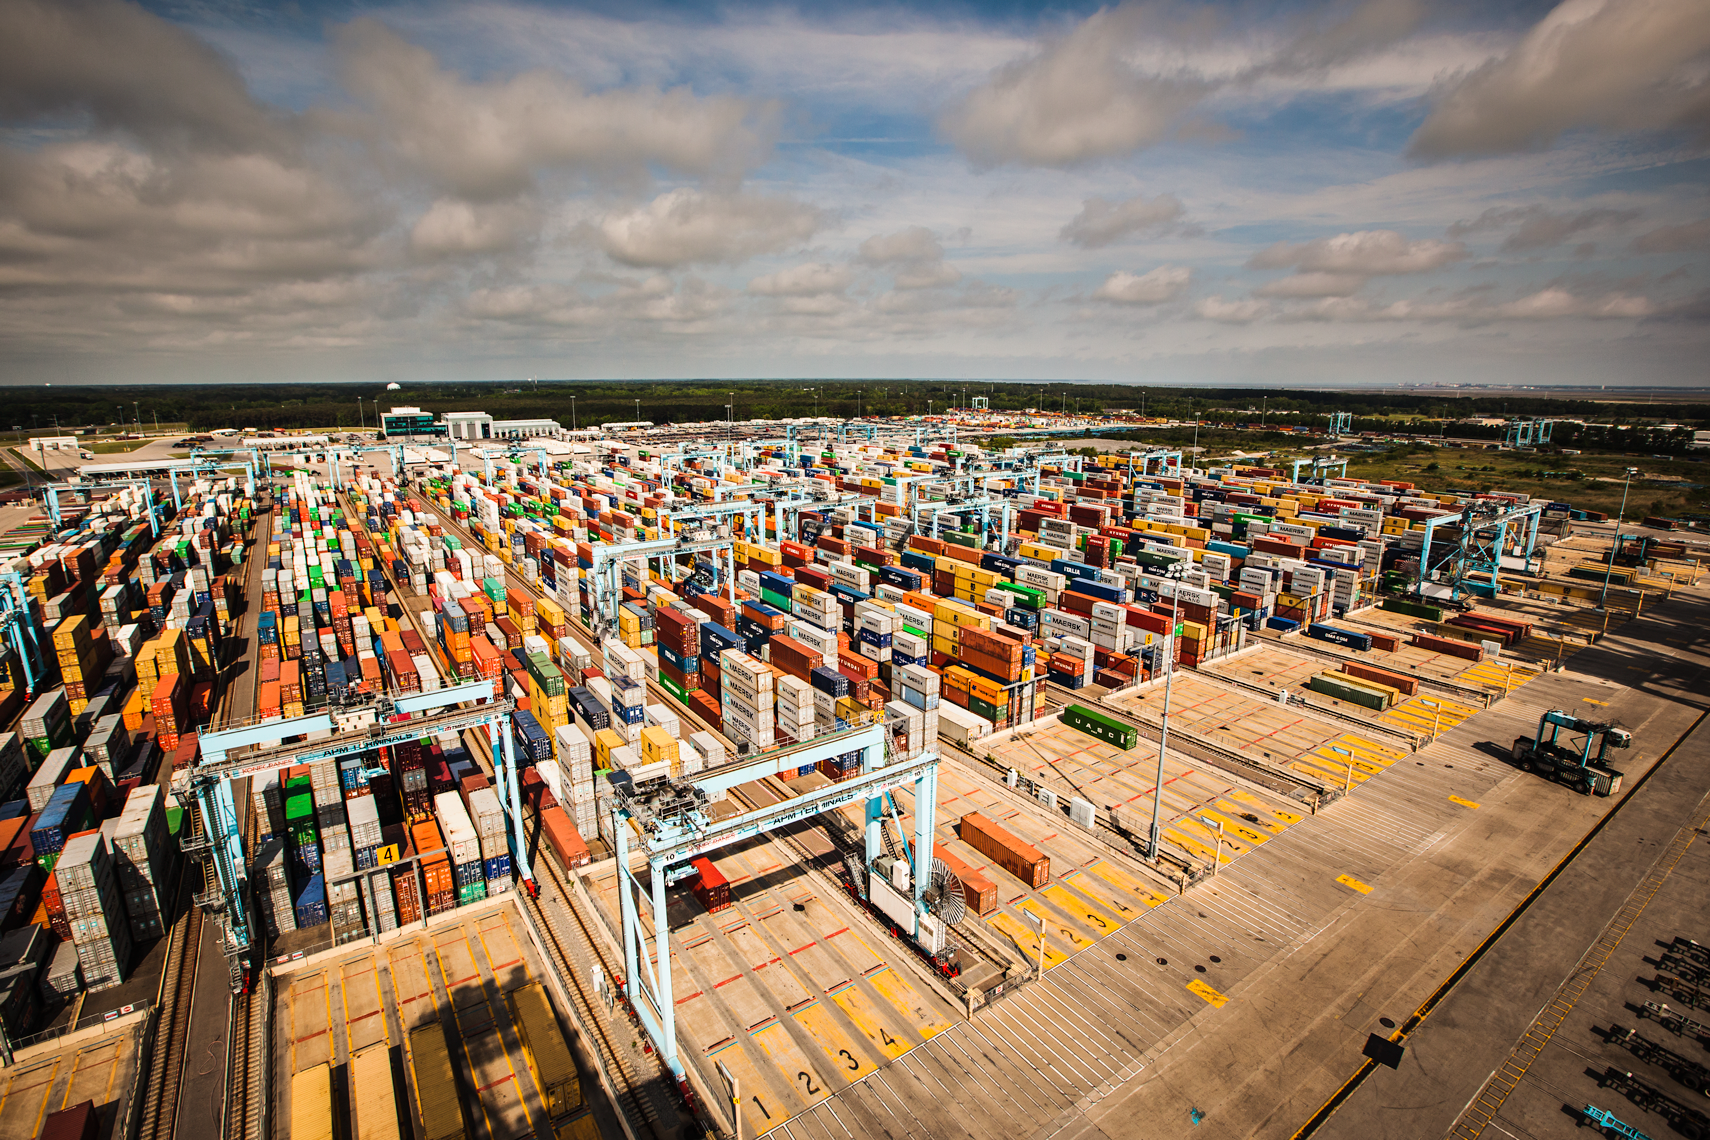 Containers-yard-pano